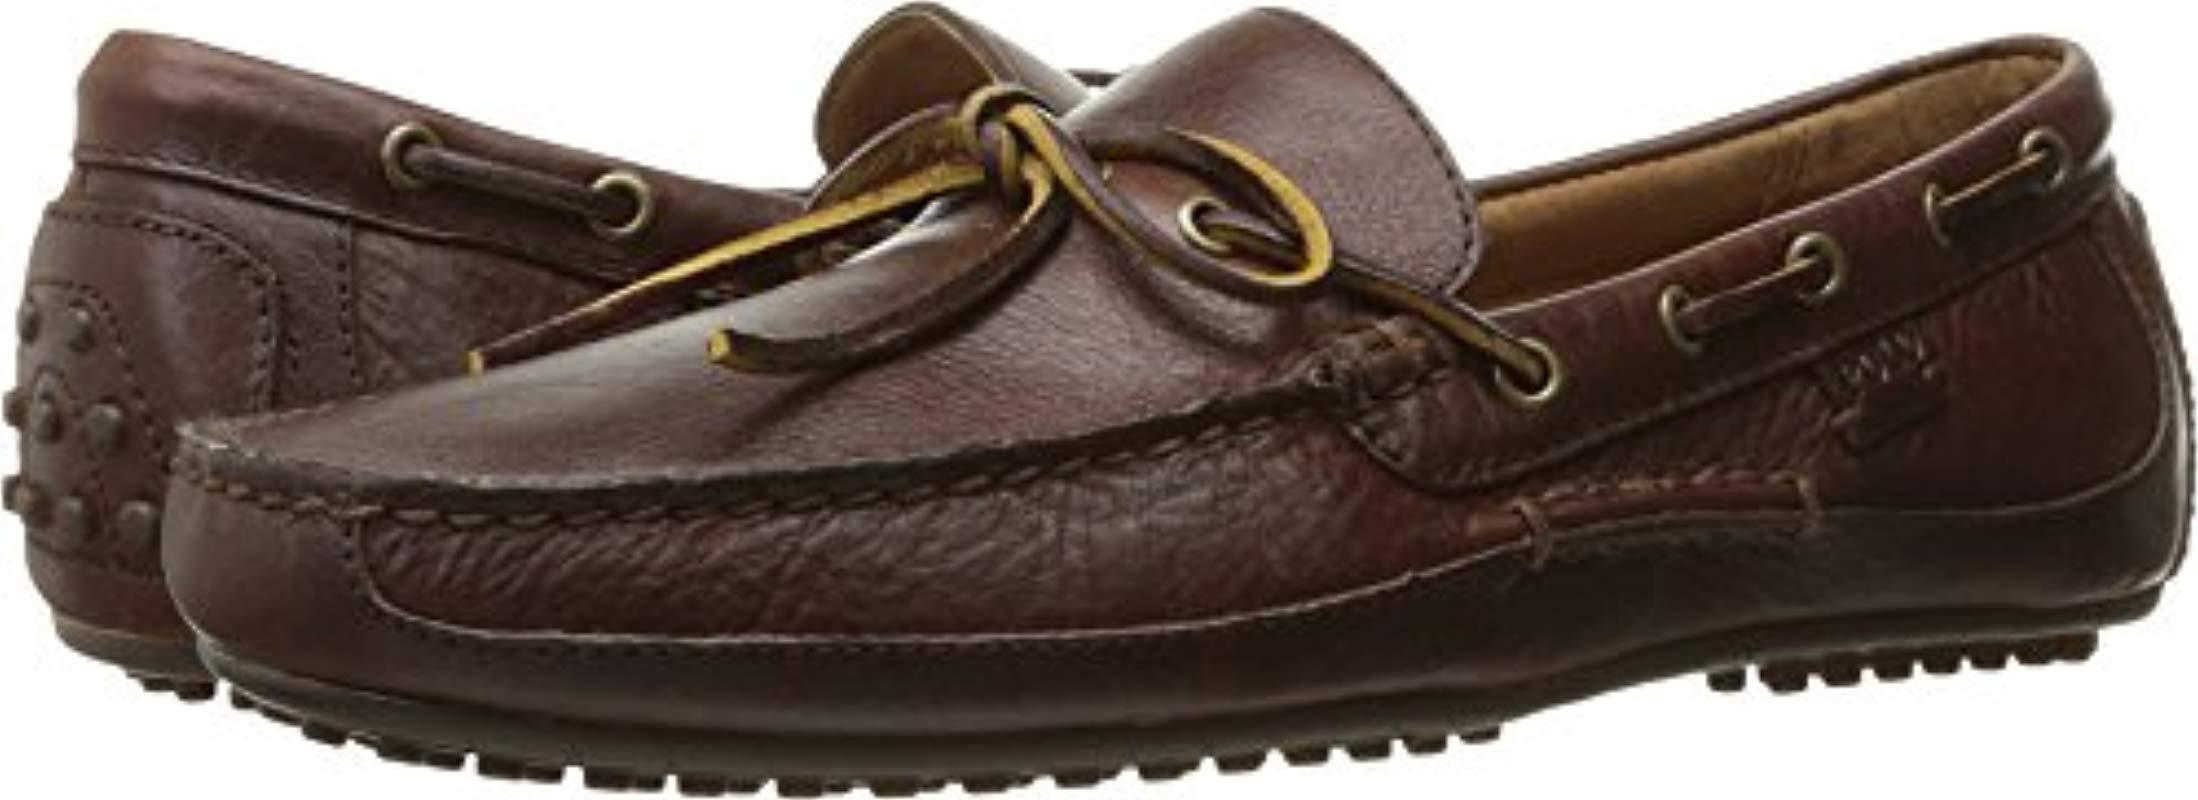 Lyst - Polo Ralph Lauren Wyndings Driving Style Loafer in Brown for Men ea9679b08a2